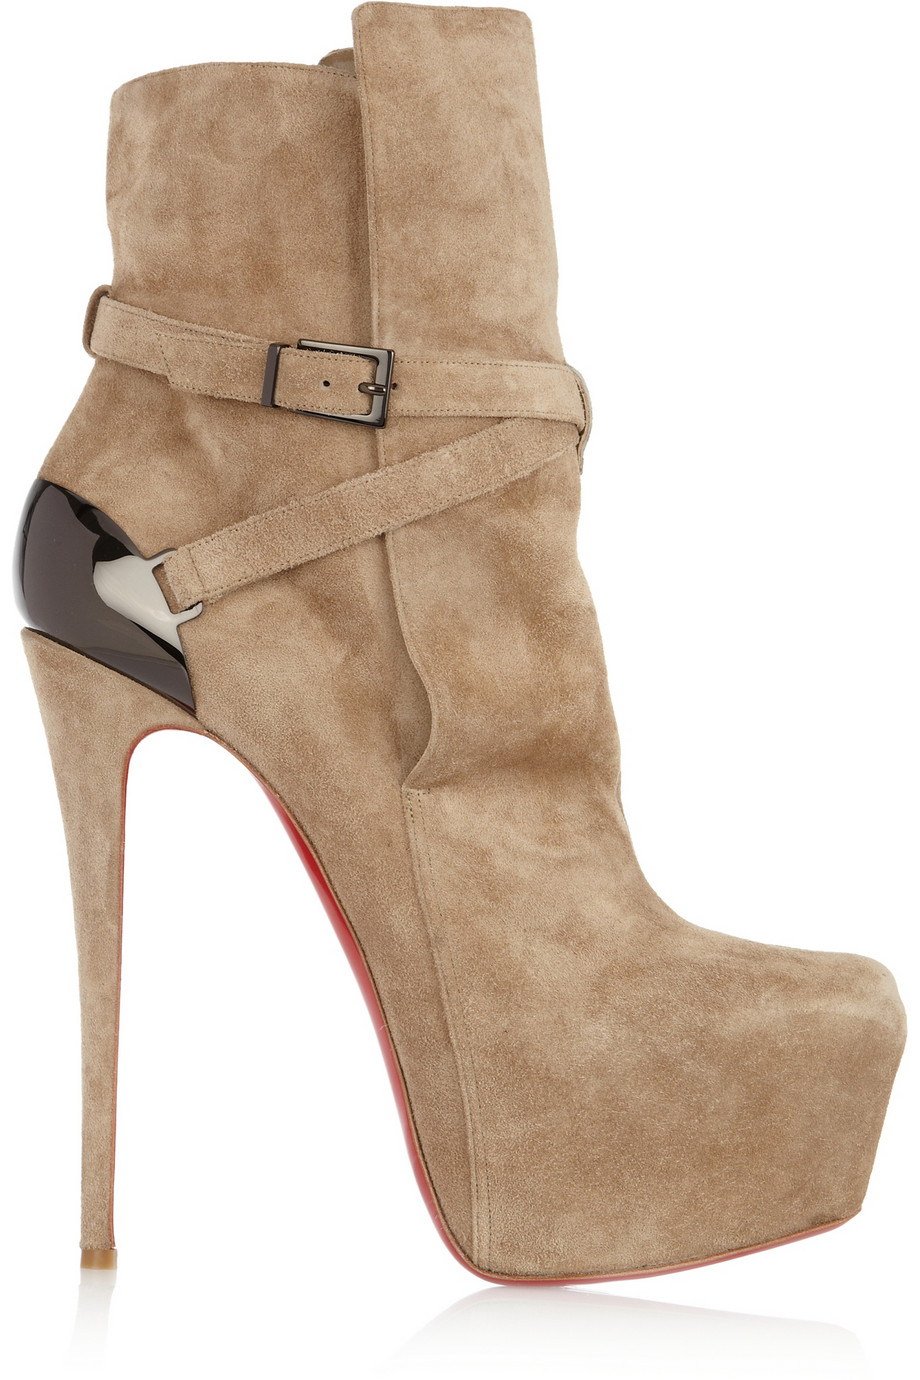 64a6862dee9 Christian Louboutin Natural Equestria 160 Platform Boots